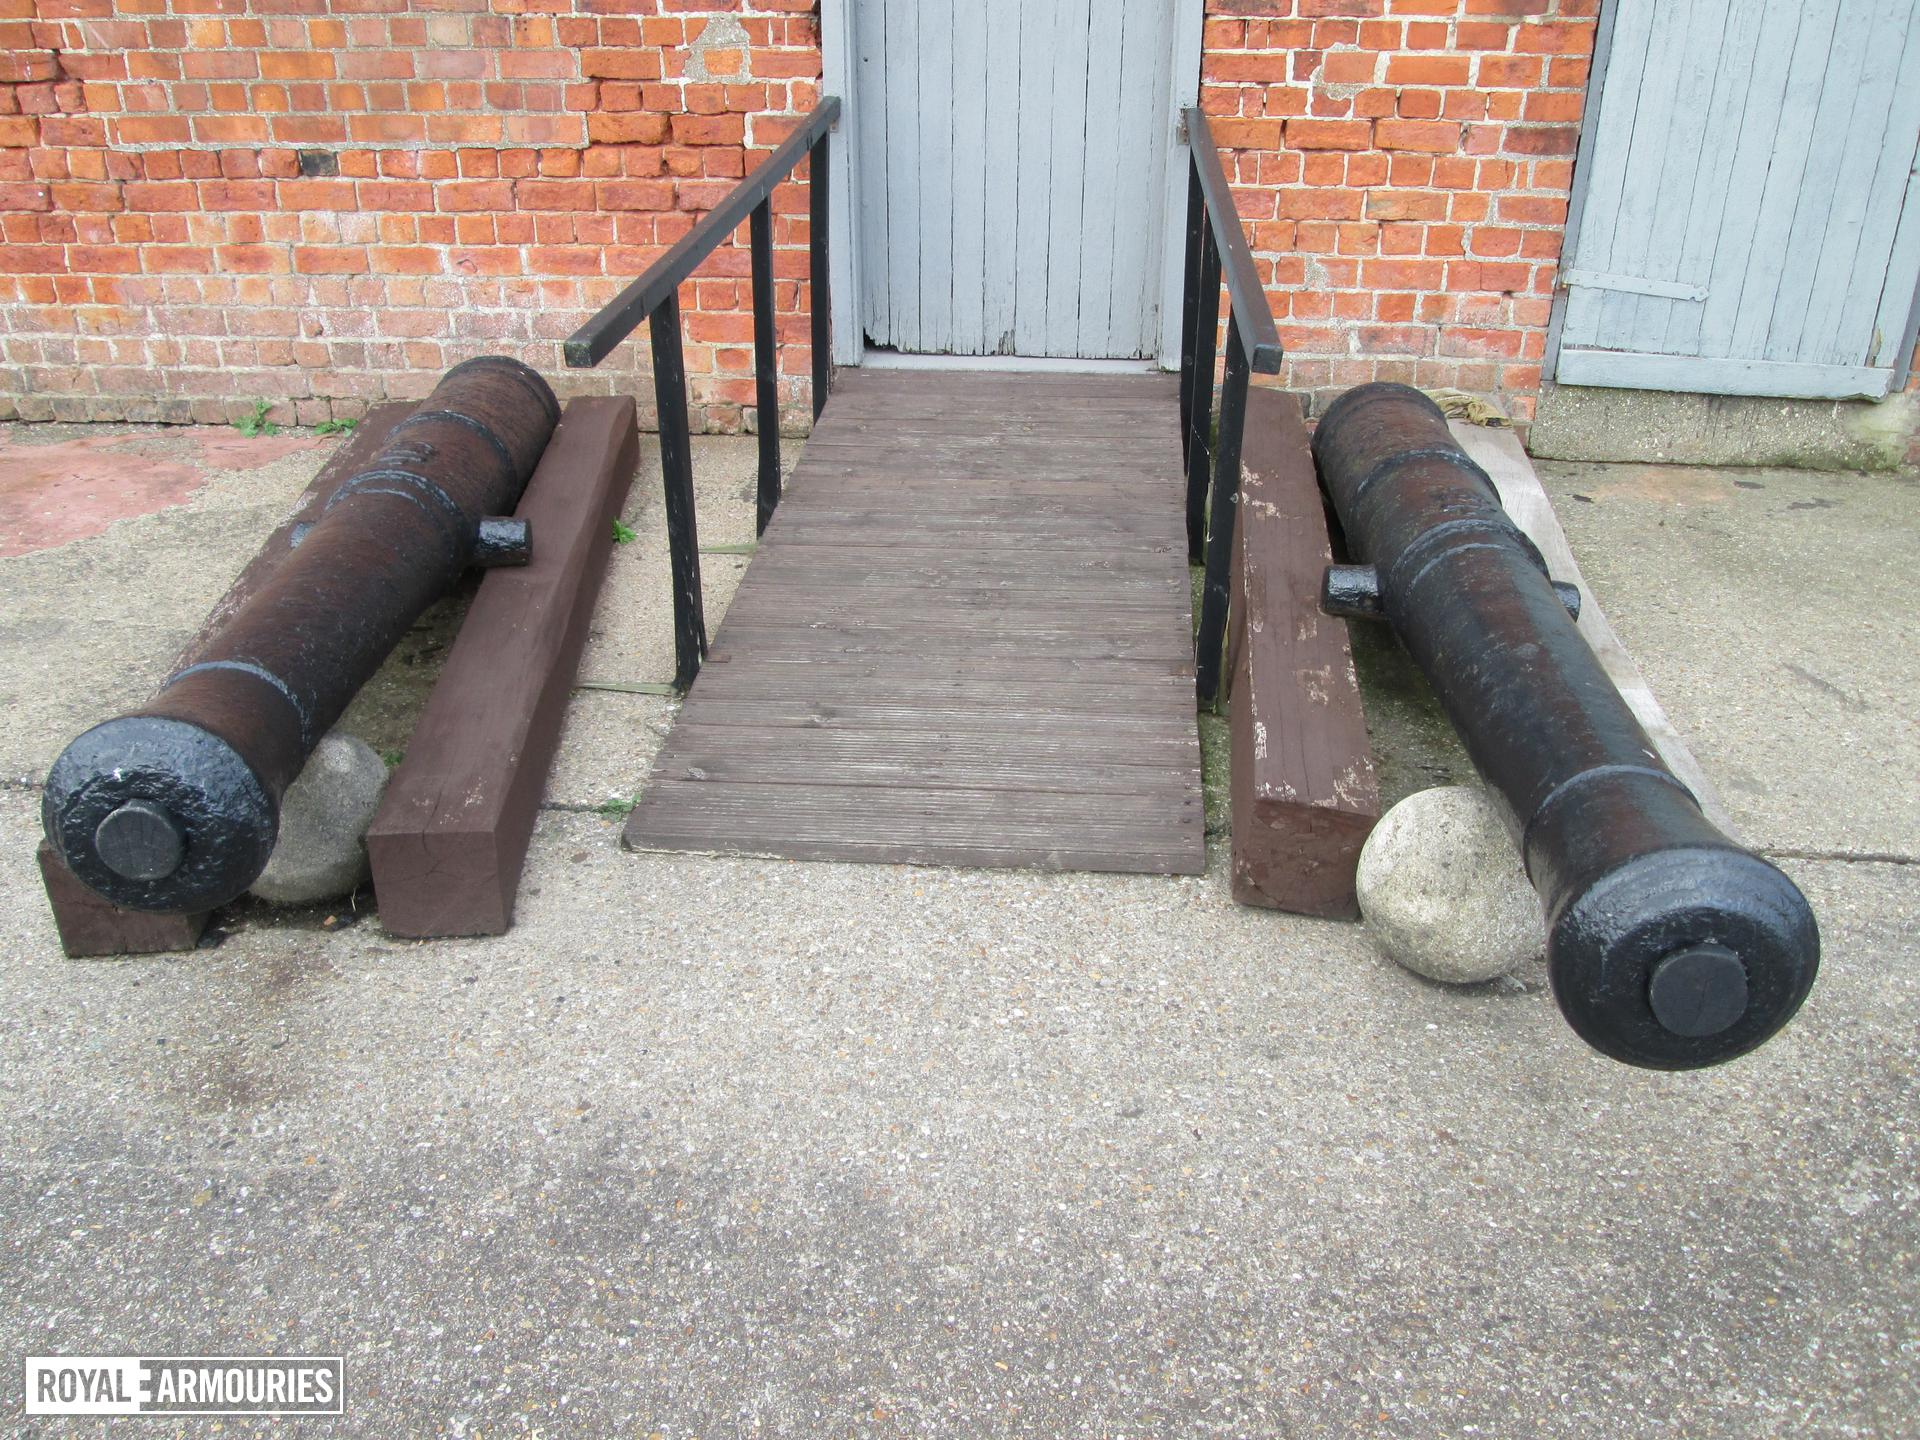 The two guns on display at Fort Paull. It is unclear which is which as they are identical.